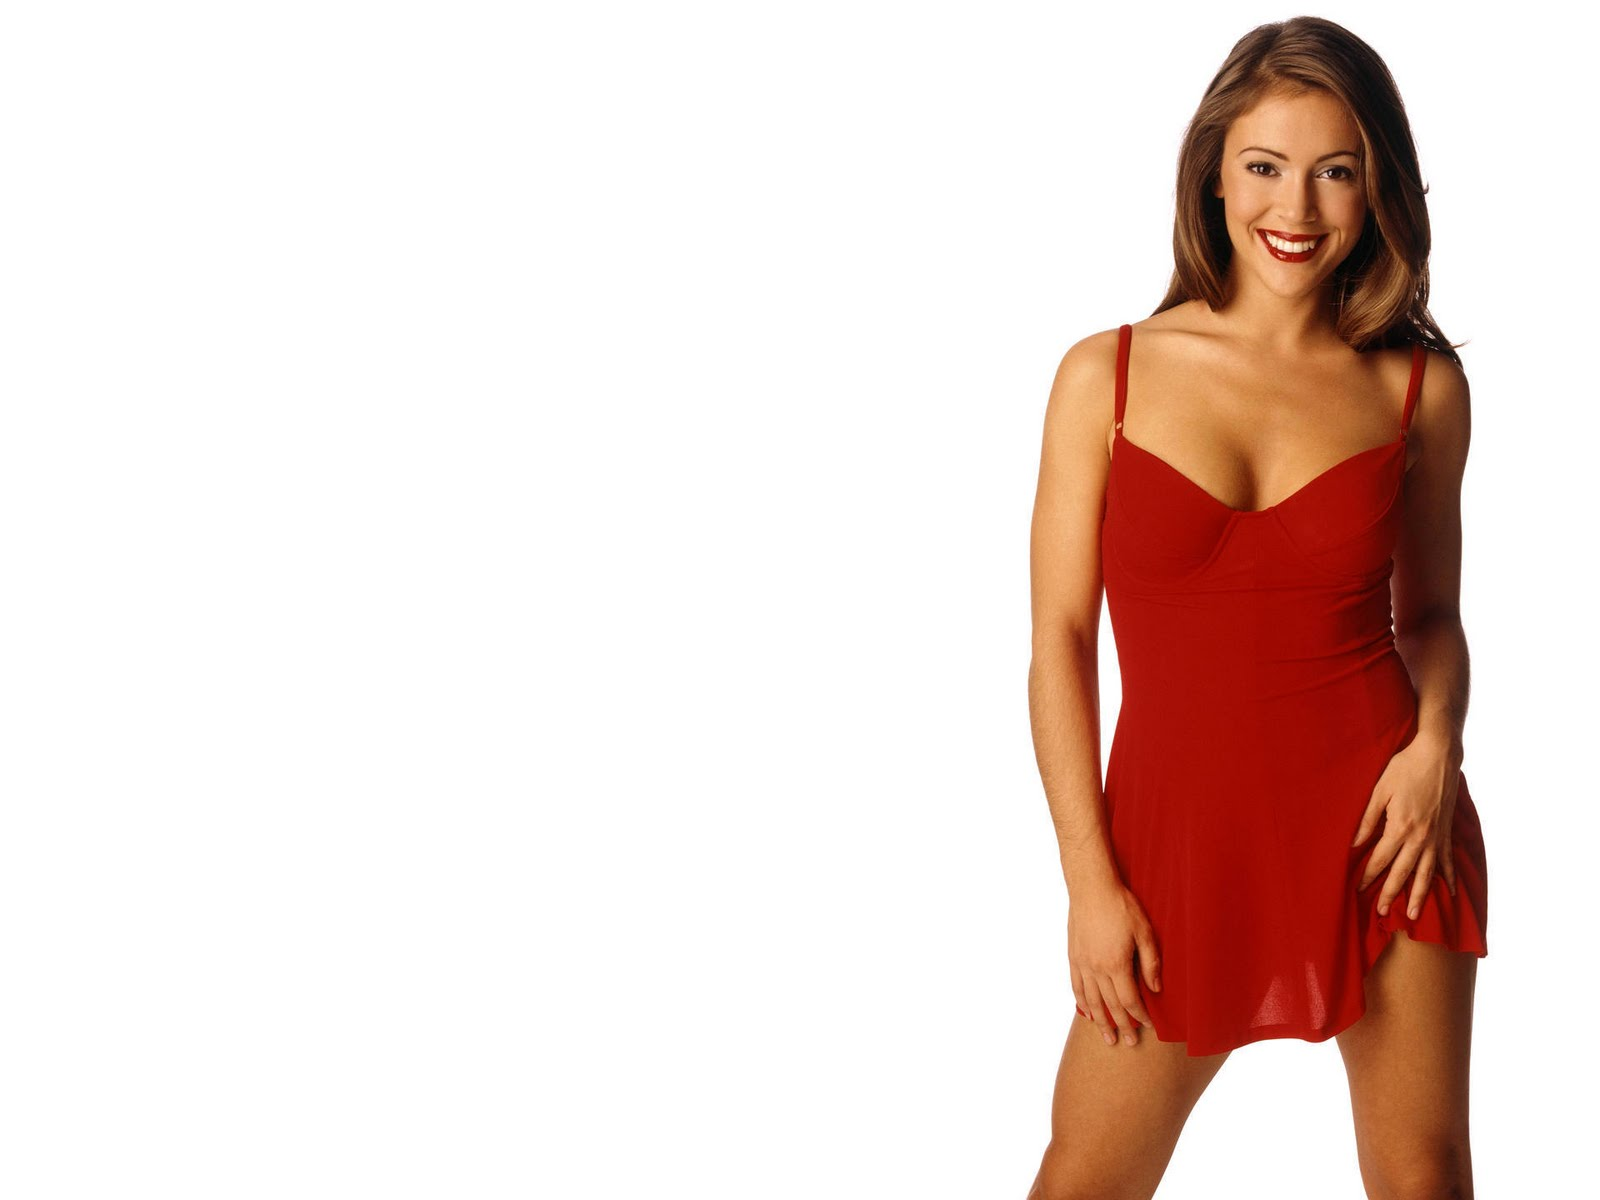 Alyssa milano hot pictures photo gallery wallpapers for Wallpaper milano